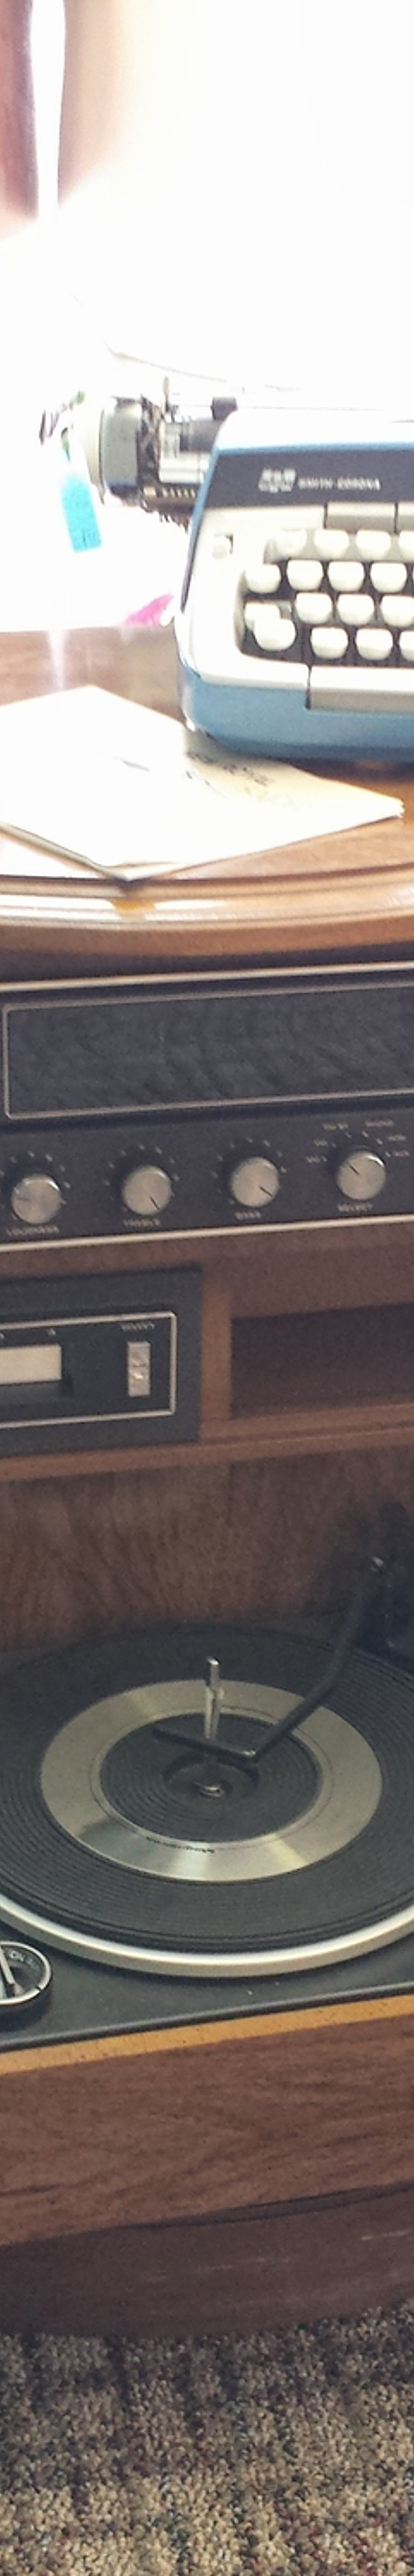 Vintage Audio Console Radios And Record Players